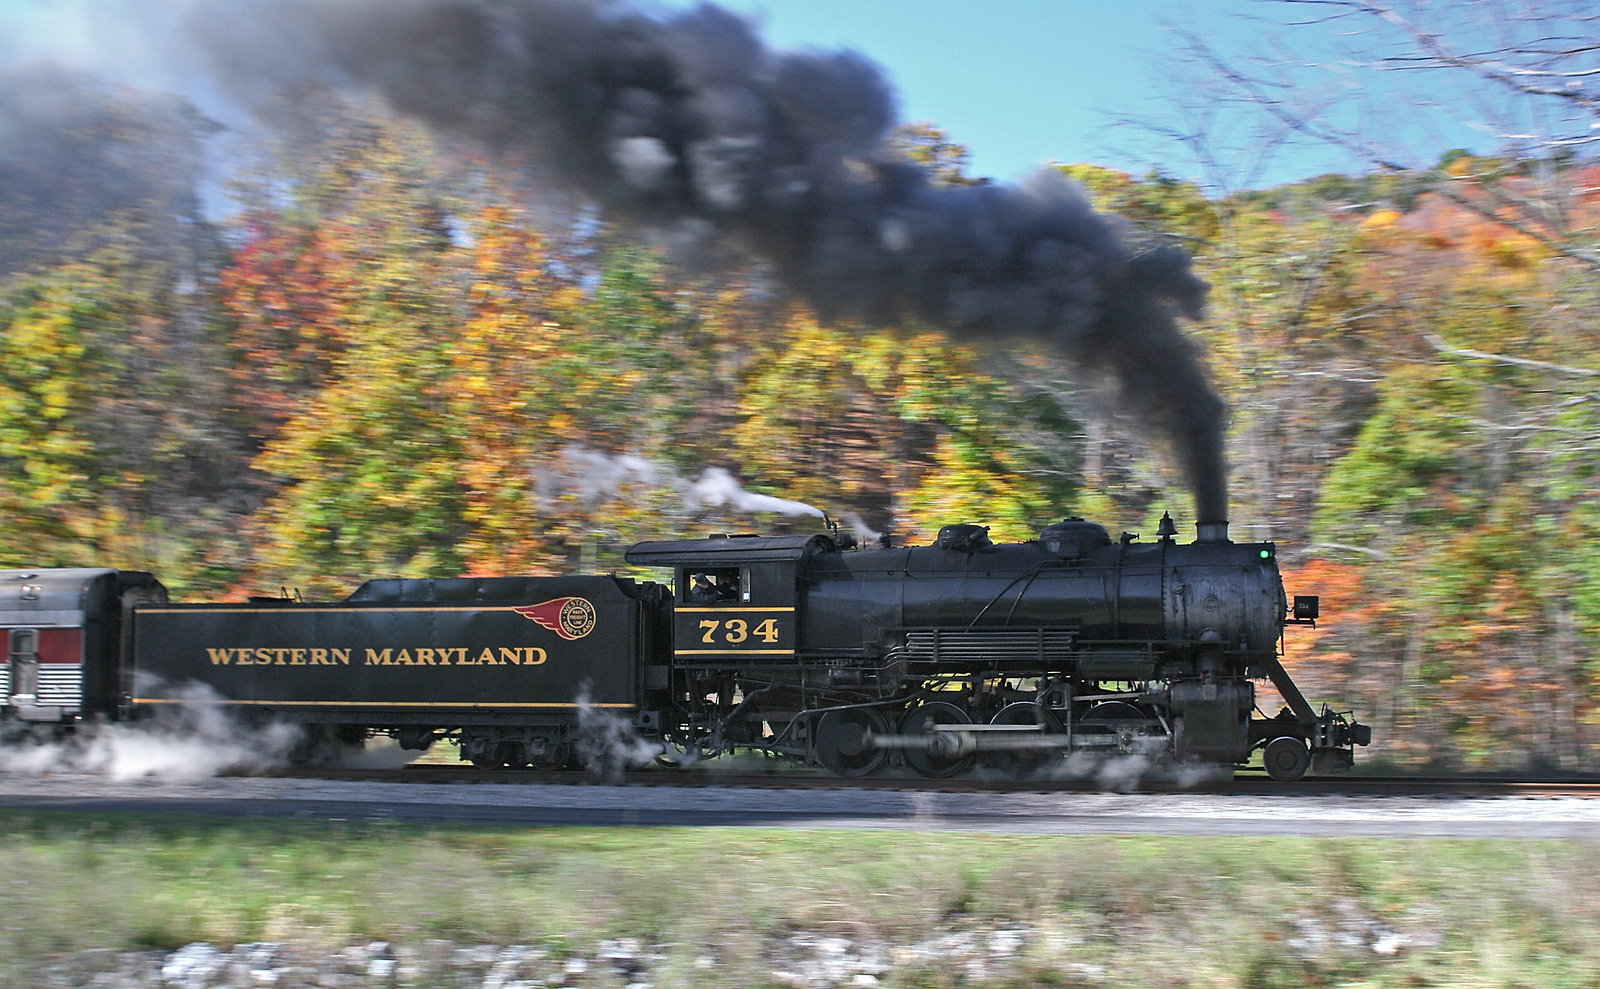 Panned shot of #734 steam train Western Maryland Scenic Railroad